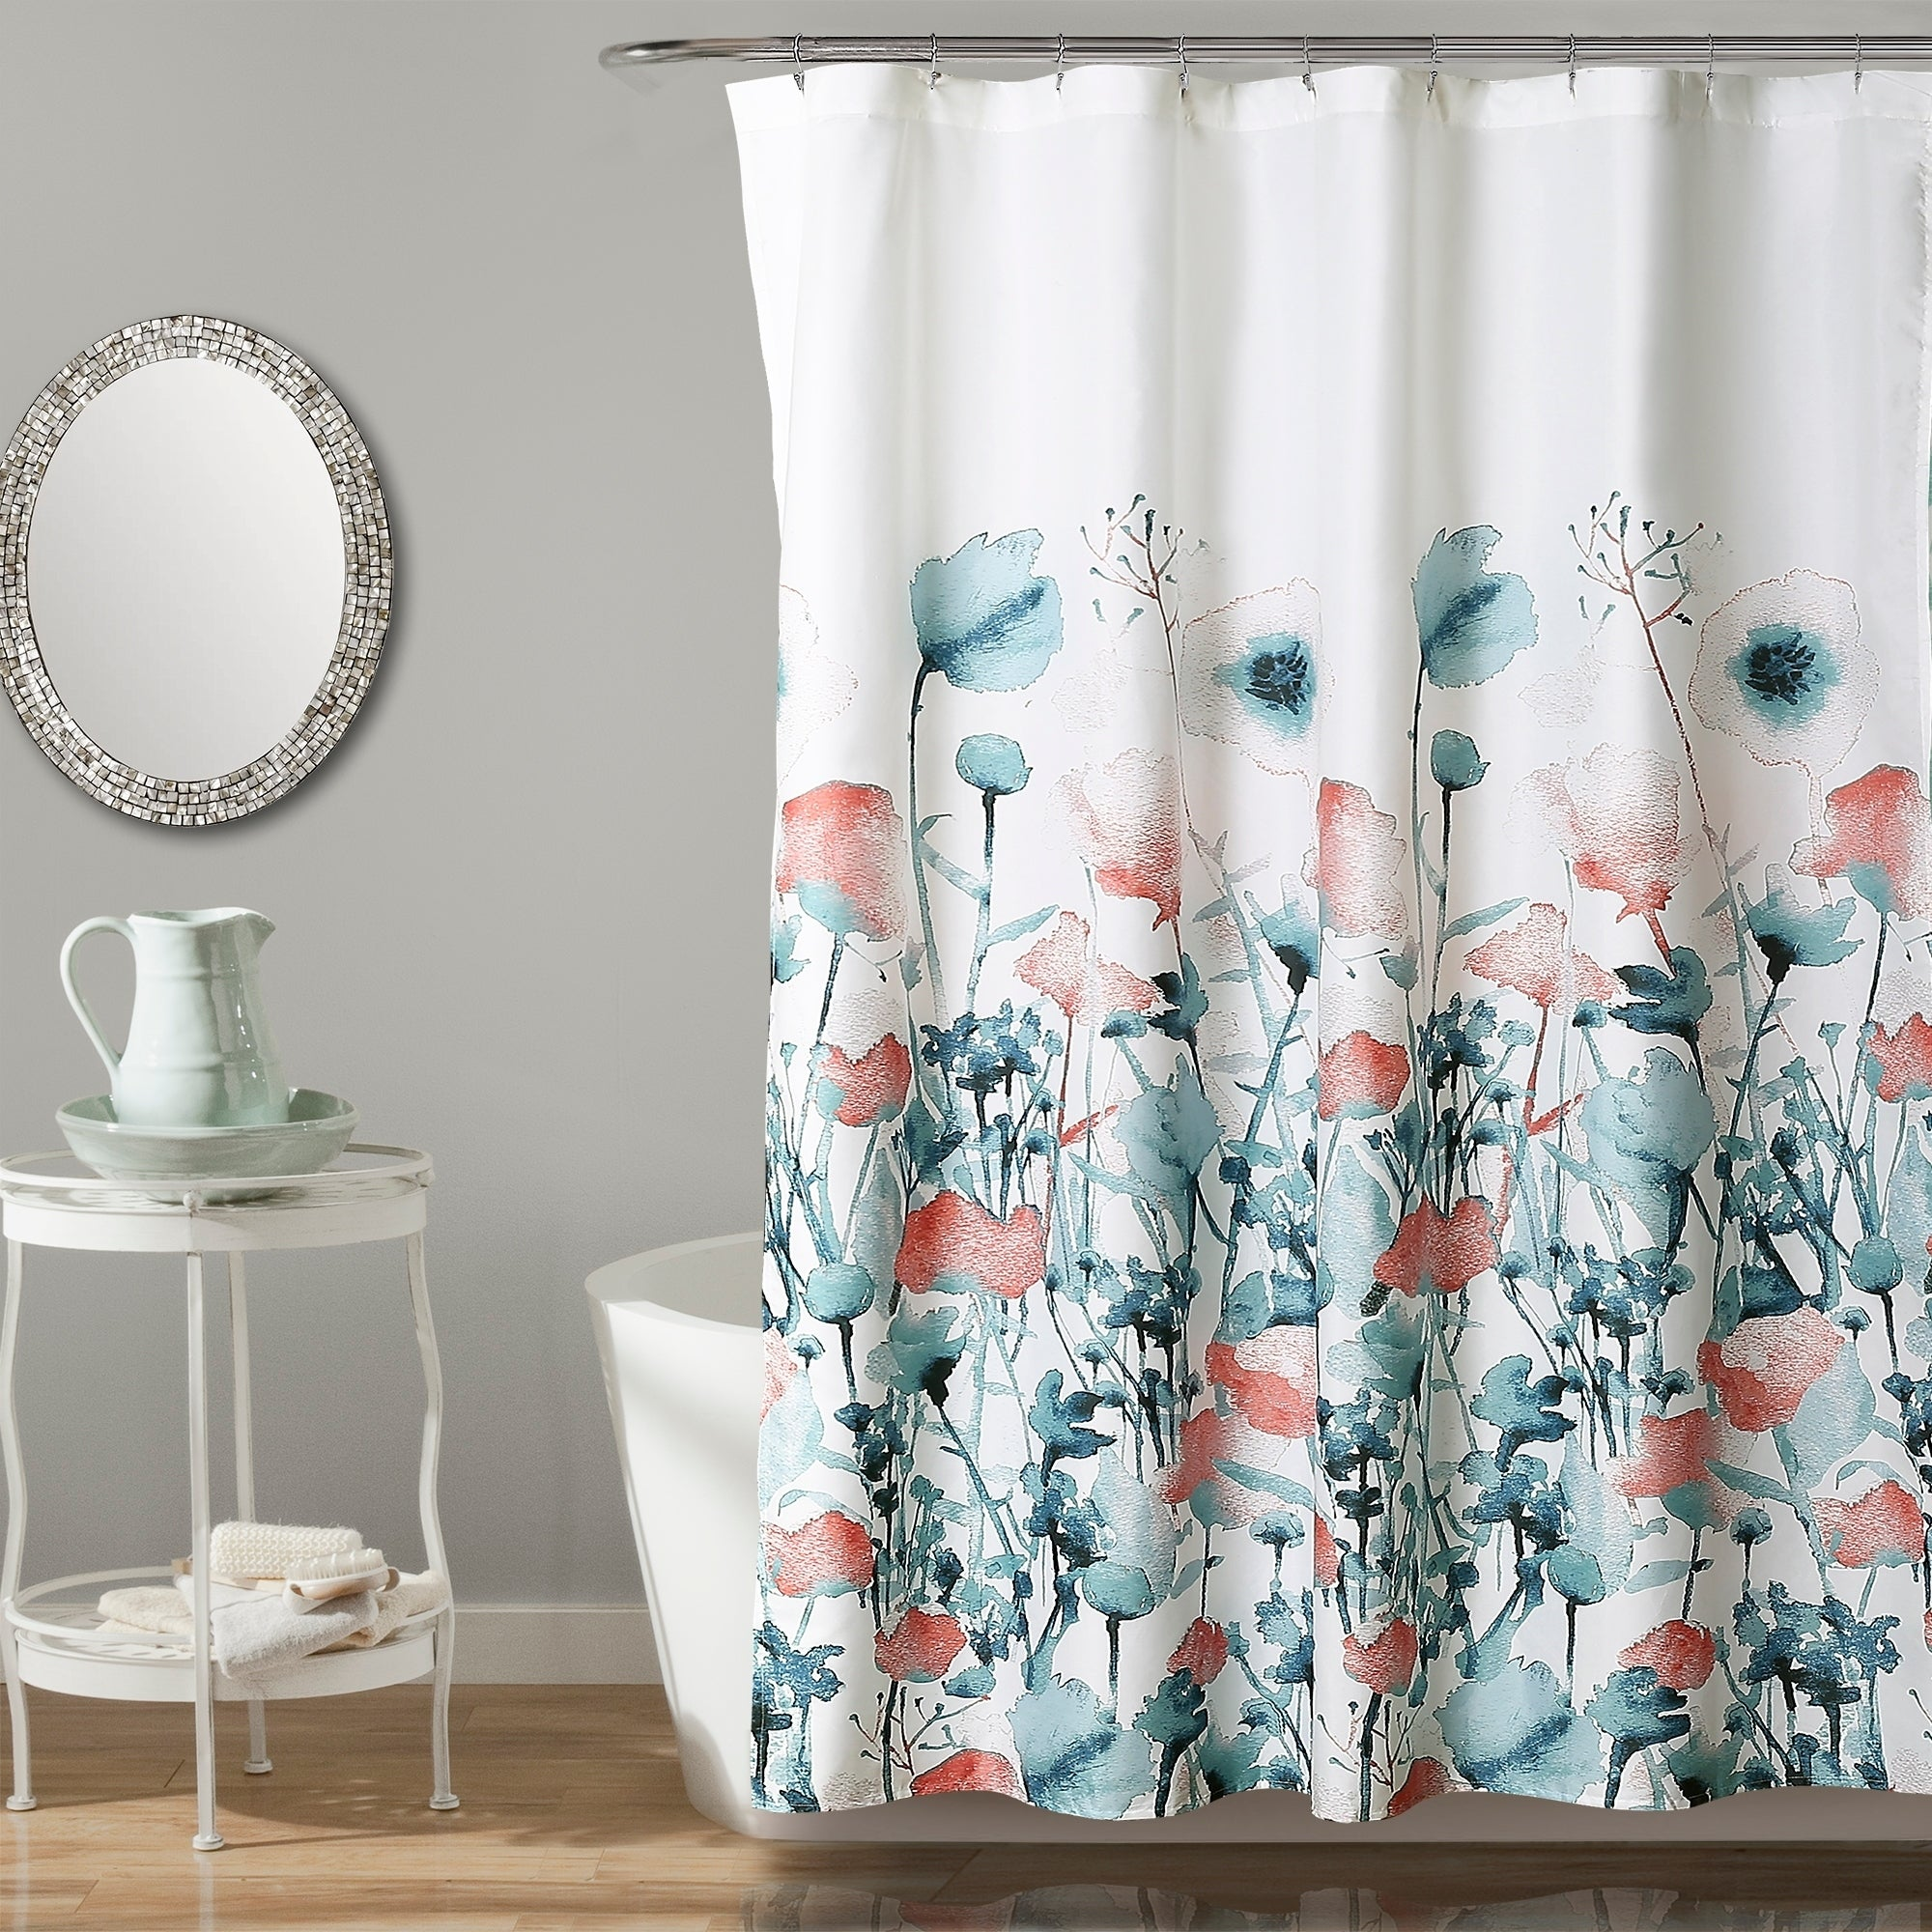 Matching Bedroom And Bathroom Sets: Shop Lush Decor Zuri Flora Shower Curtain